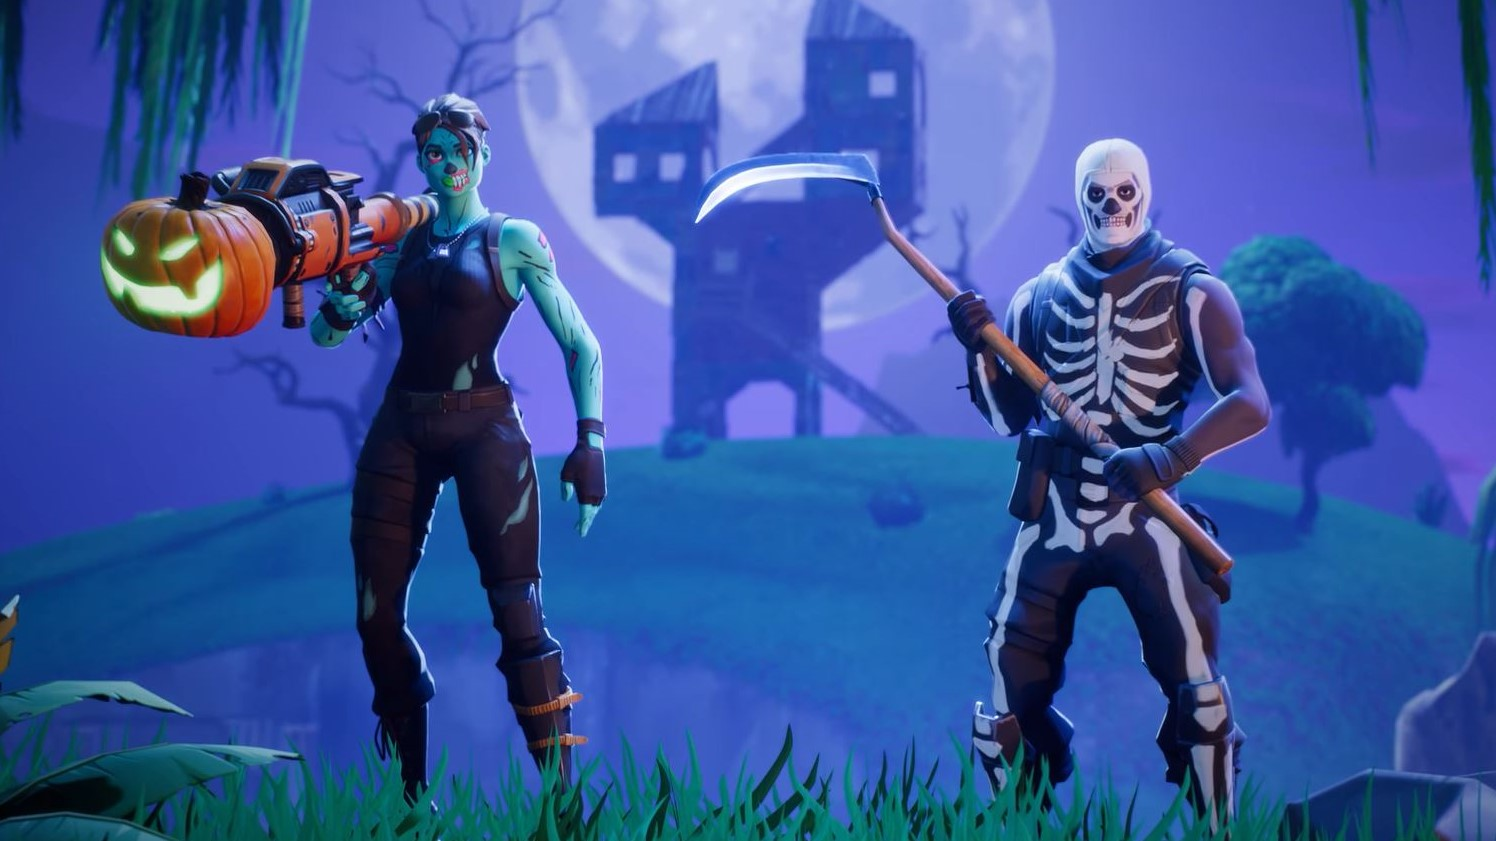 Two Fortnite skins of some Halloween outfits